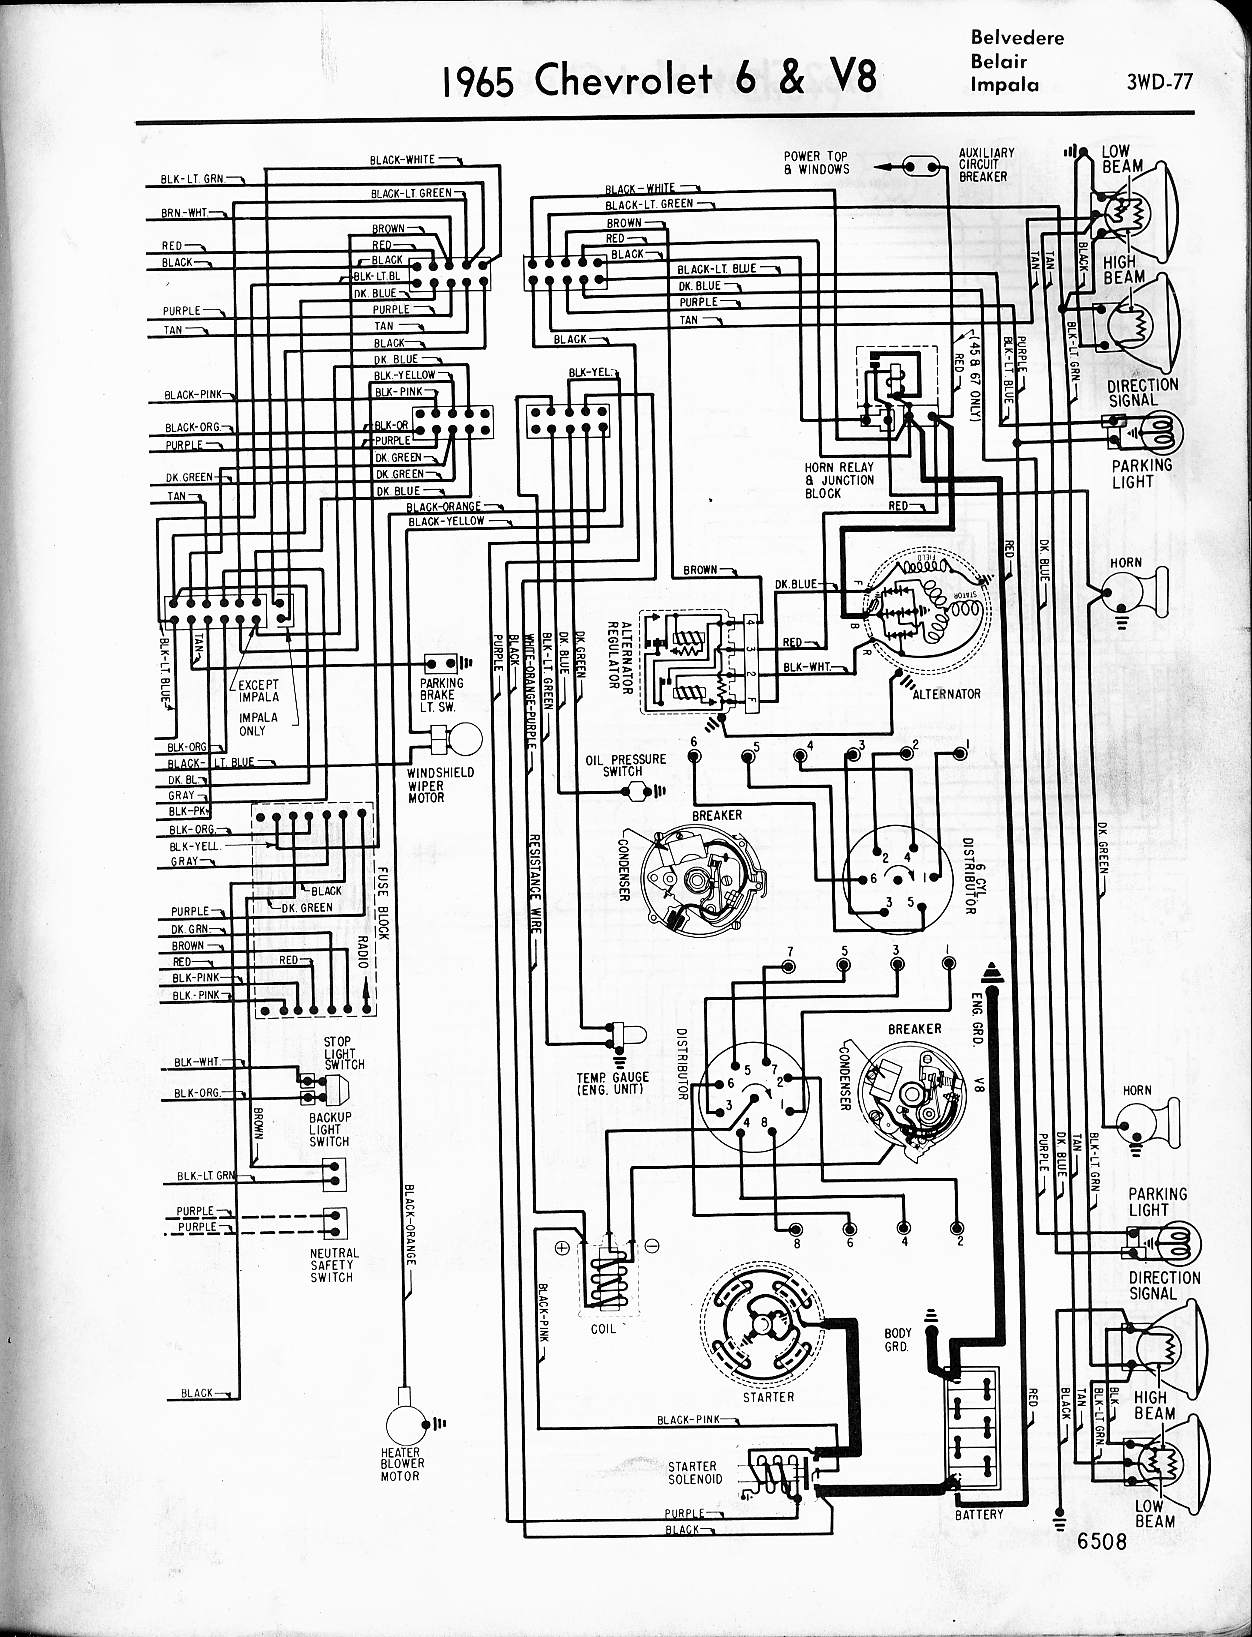 1965 Cj5 Wiring Diagram Start Building A 1971 Jeep Chevy Diagrams Rh Wizard Com Wagoneer